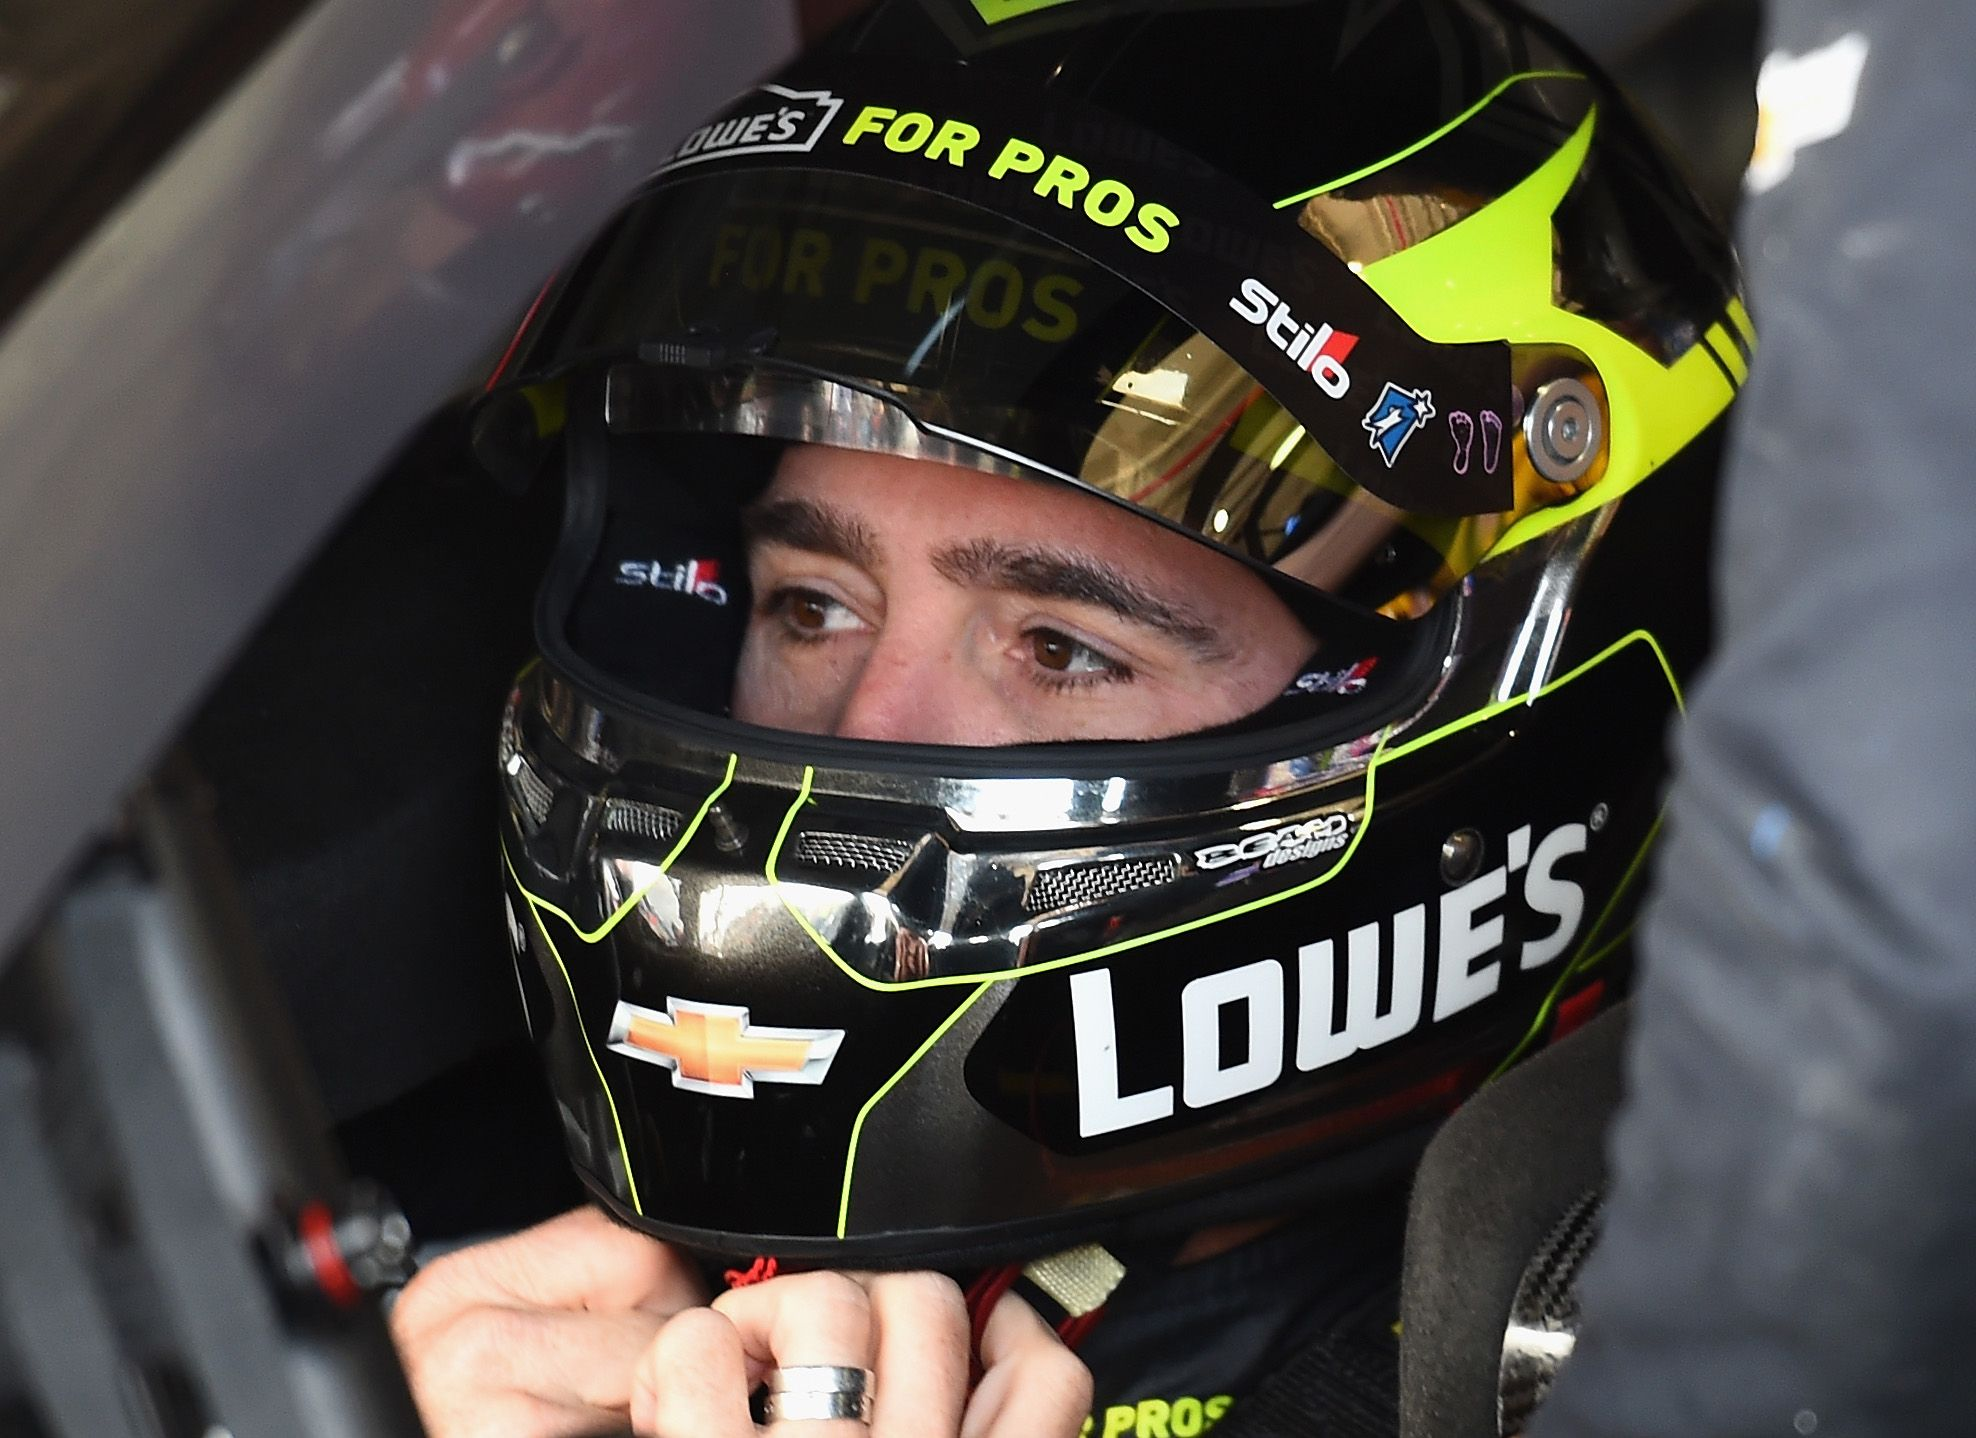 Jimmie Johnson, driver of the #48 Lowe's for Pros Chevrolet, straps on his helmet